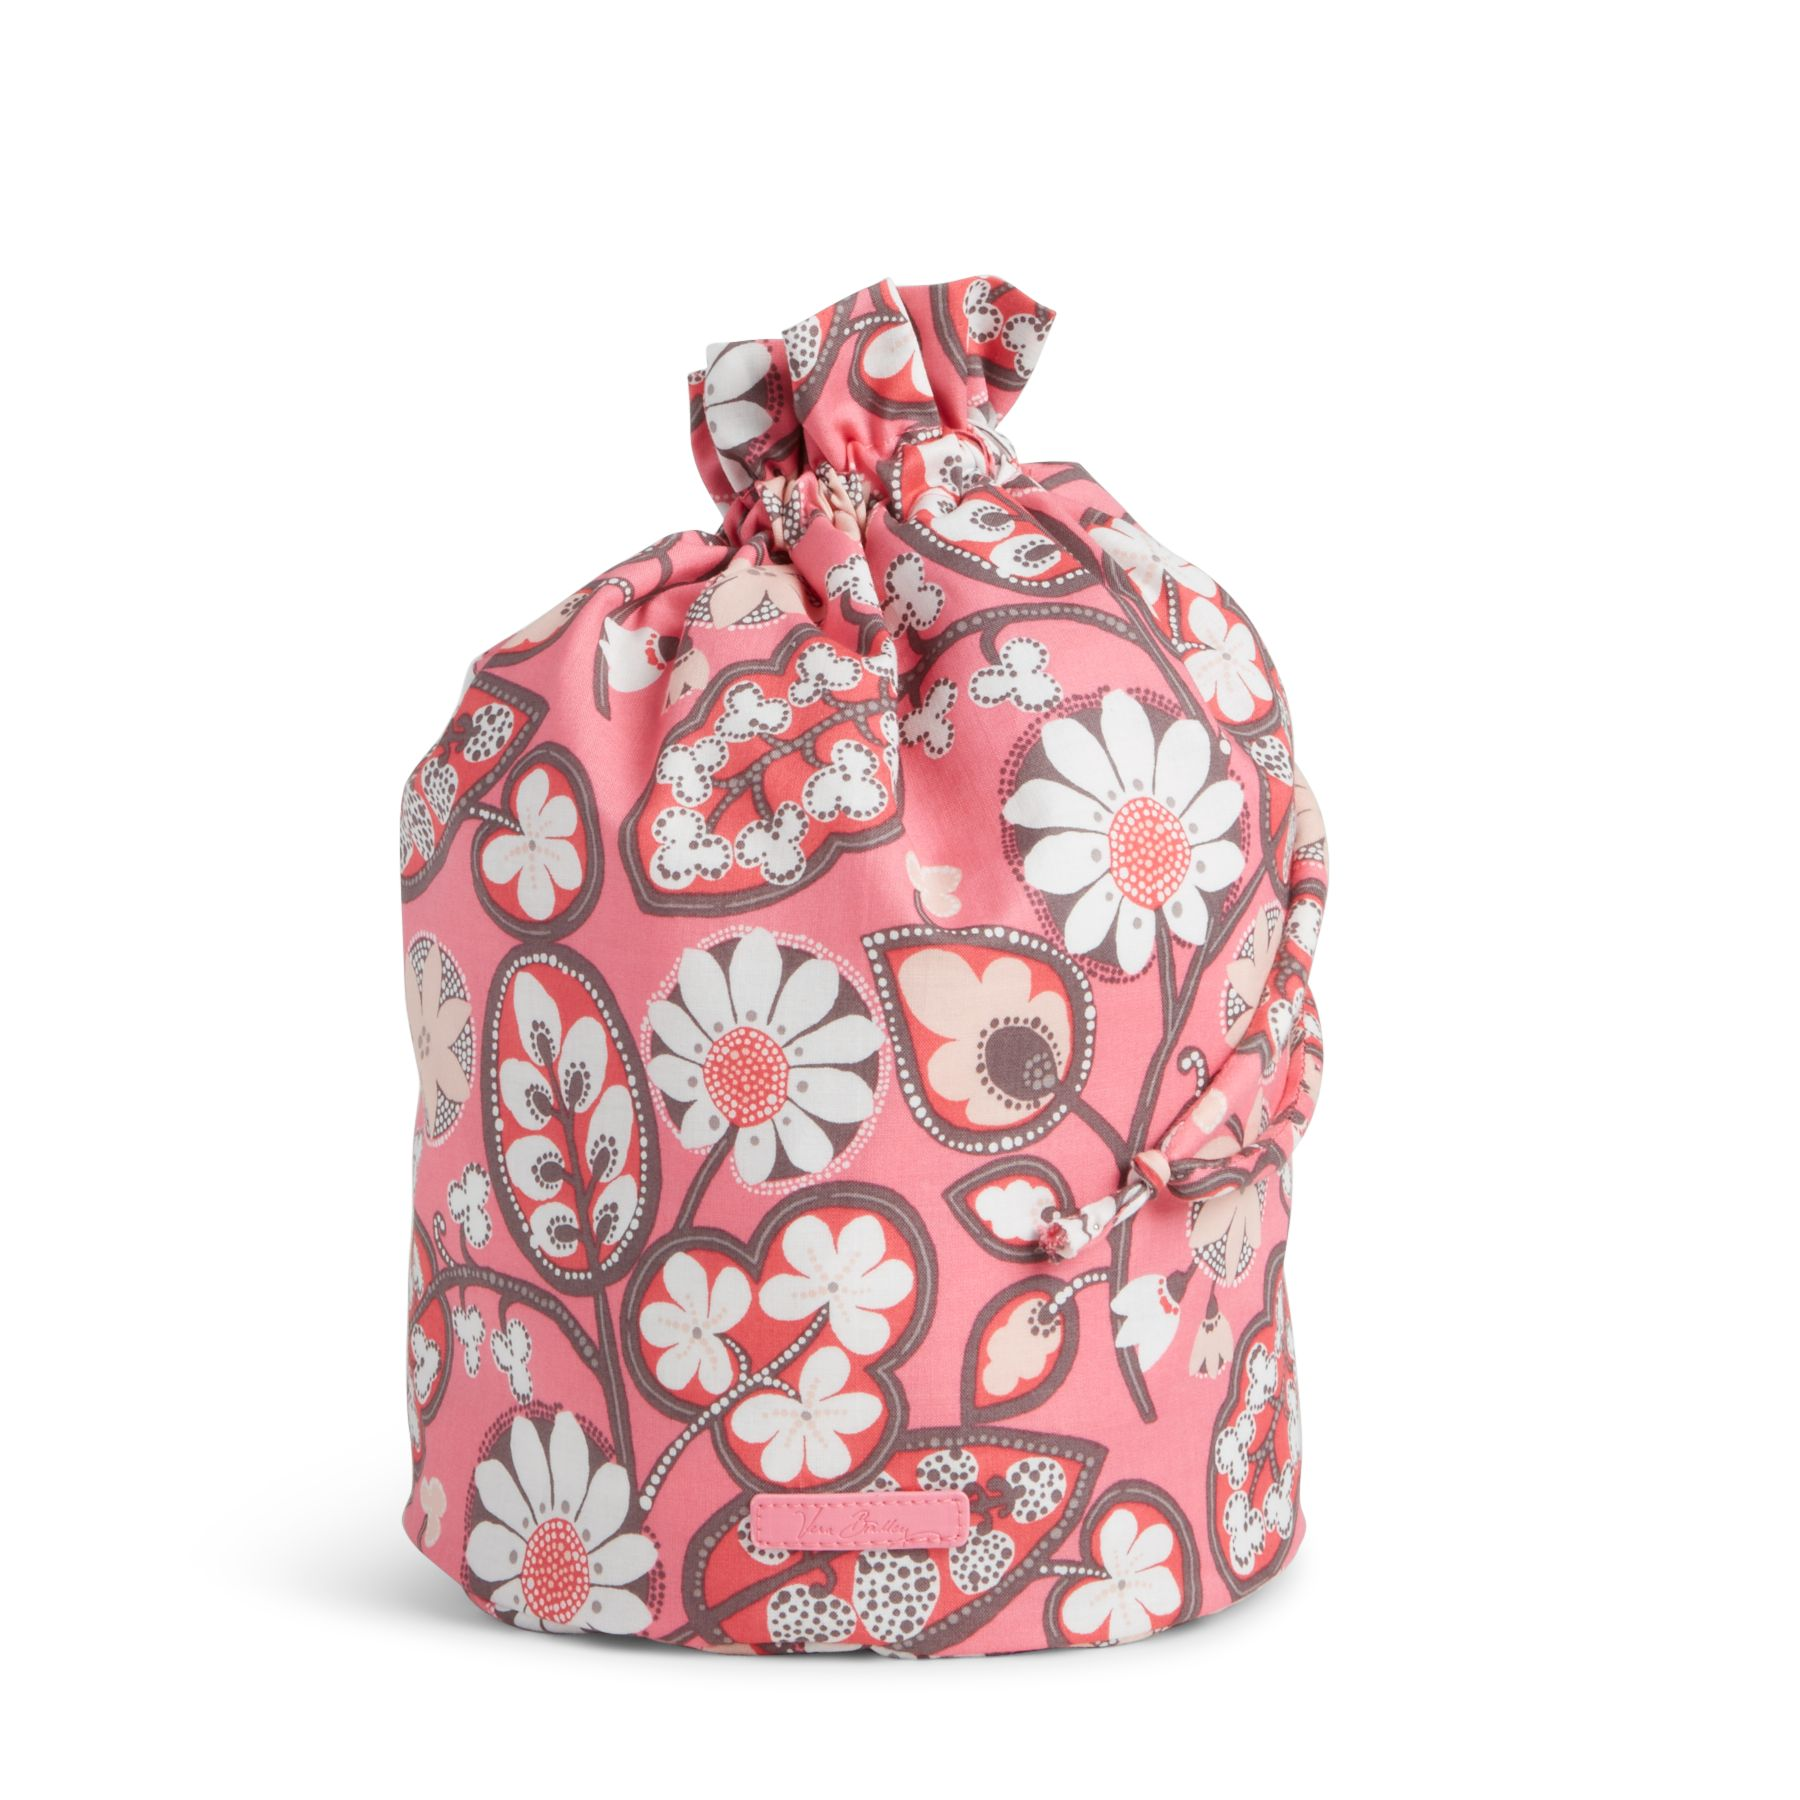 Vera Bradley Ditty Bag in Blush Pink